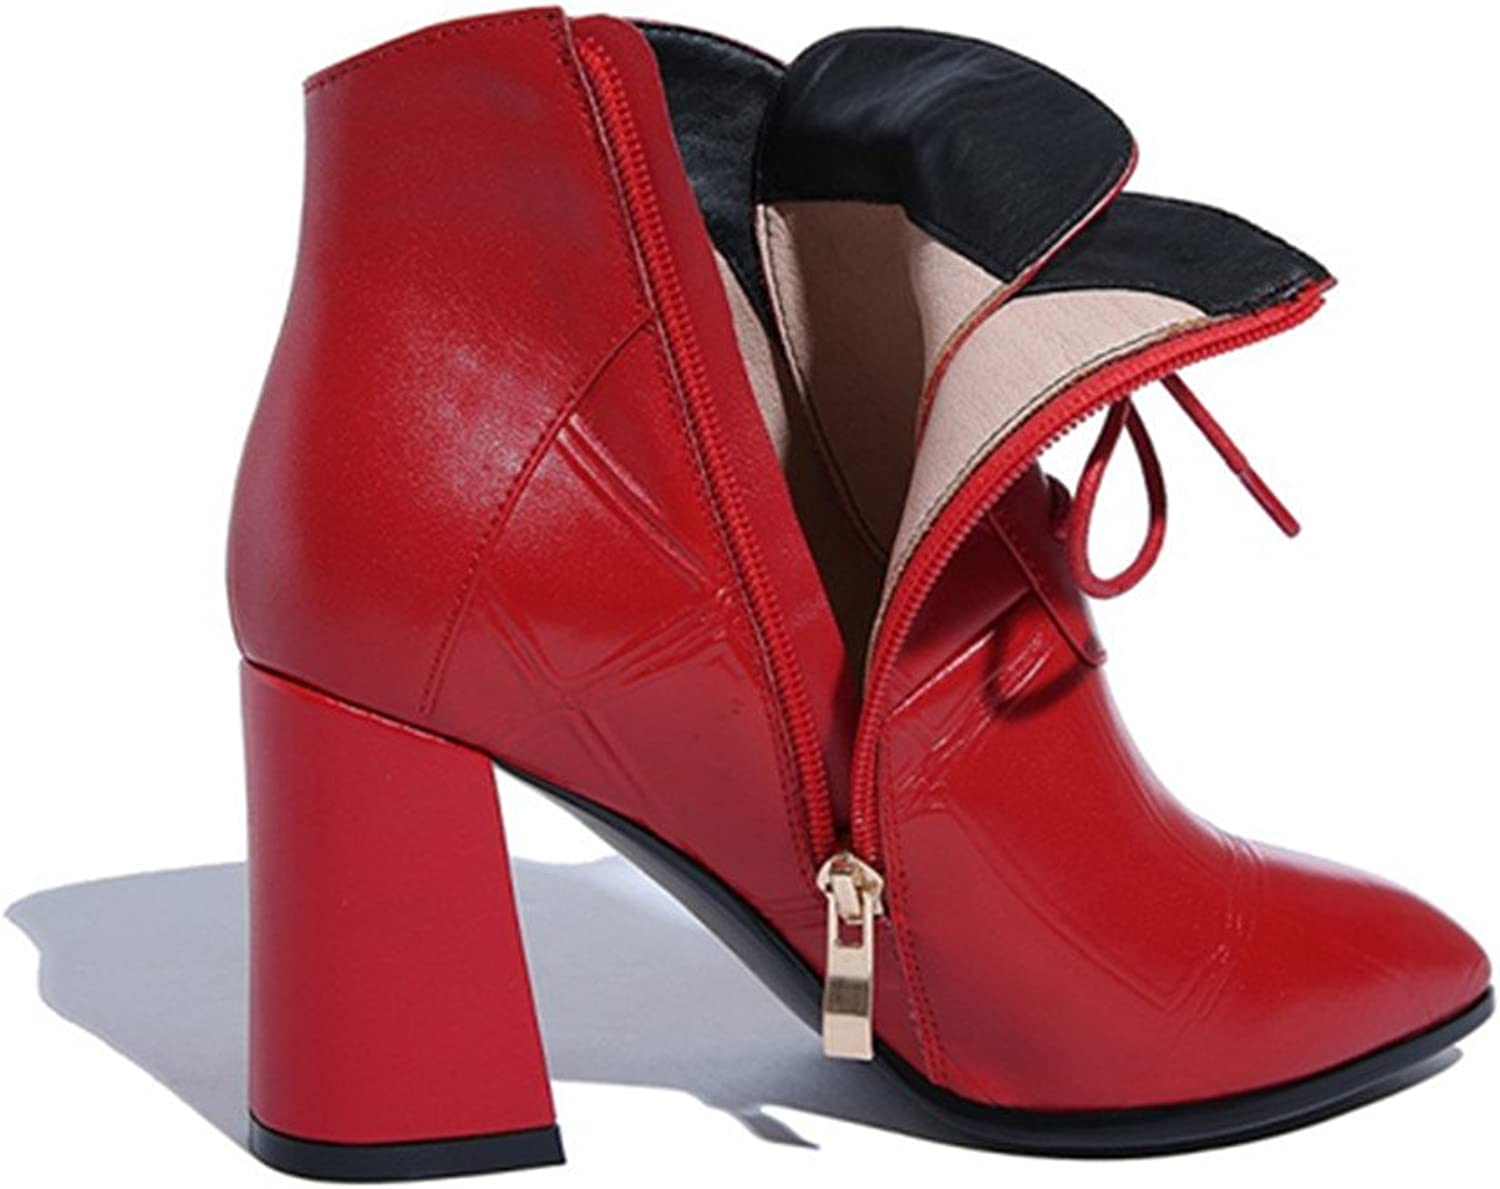 MANRINO Red Genuine Leather Block Heel Women Ankle Boots (6)